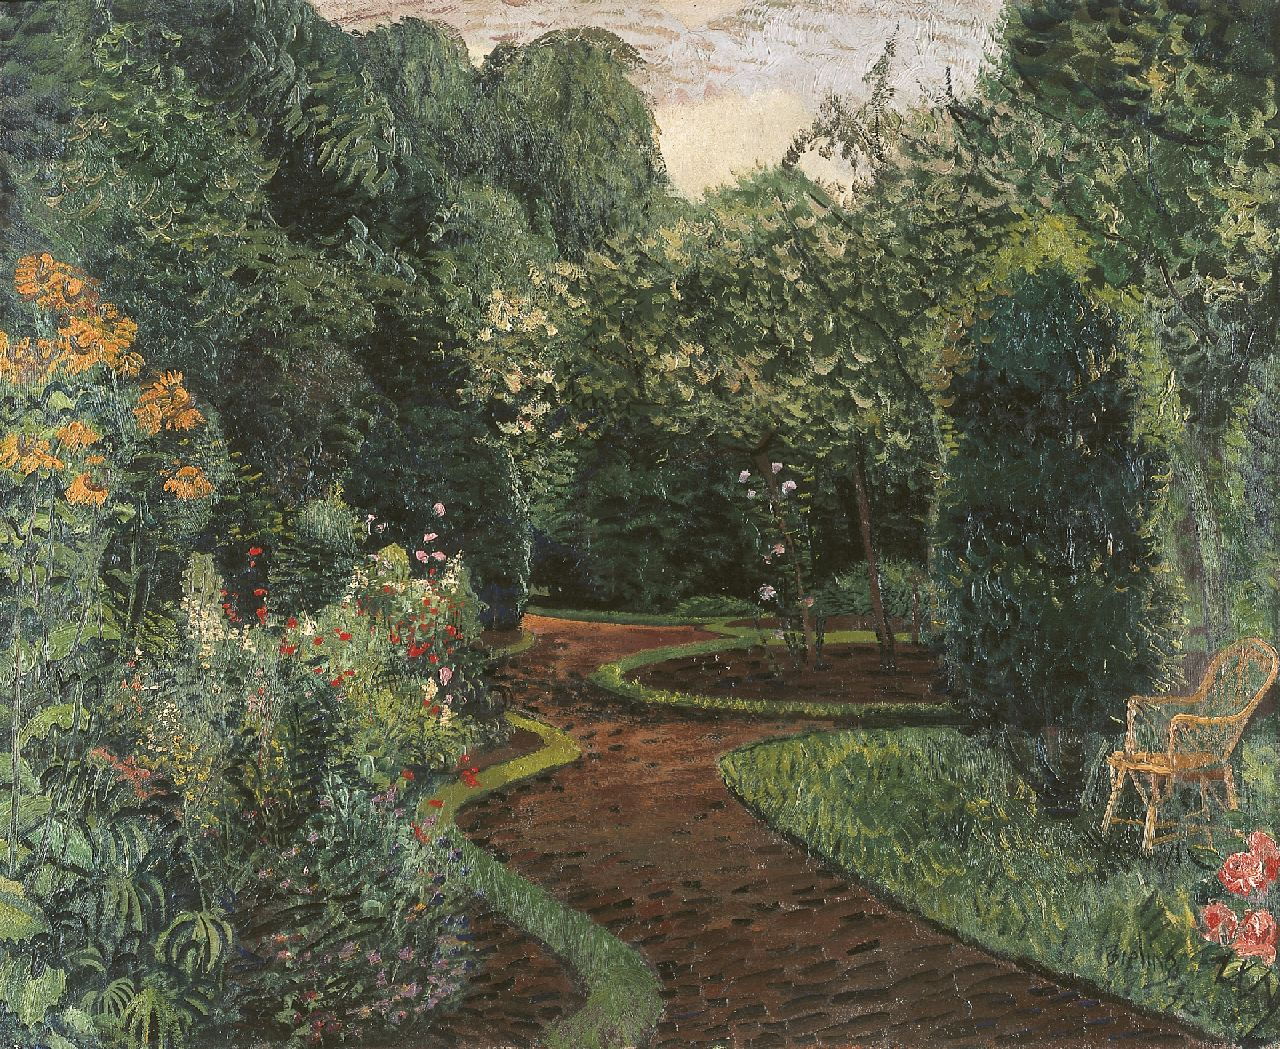 Bieling H.F.  | Hermann Friederich 'Herman' Bieling | Paintings offered for sale | A garden in bloom, Hillegersberg, oil on canvas 63.5 x 77.2 cm, signed l.r. and dated '32